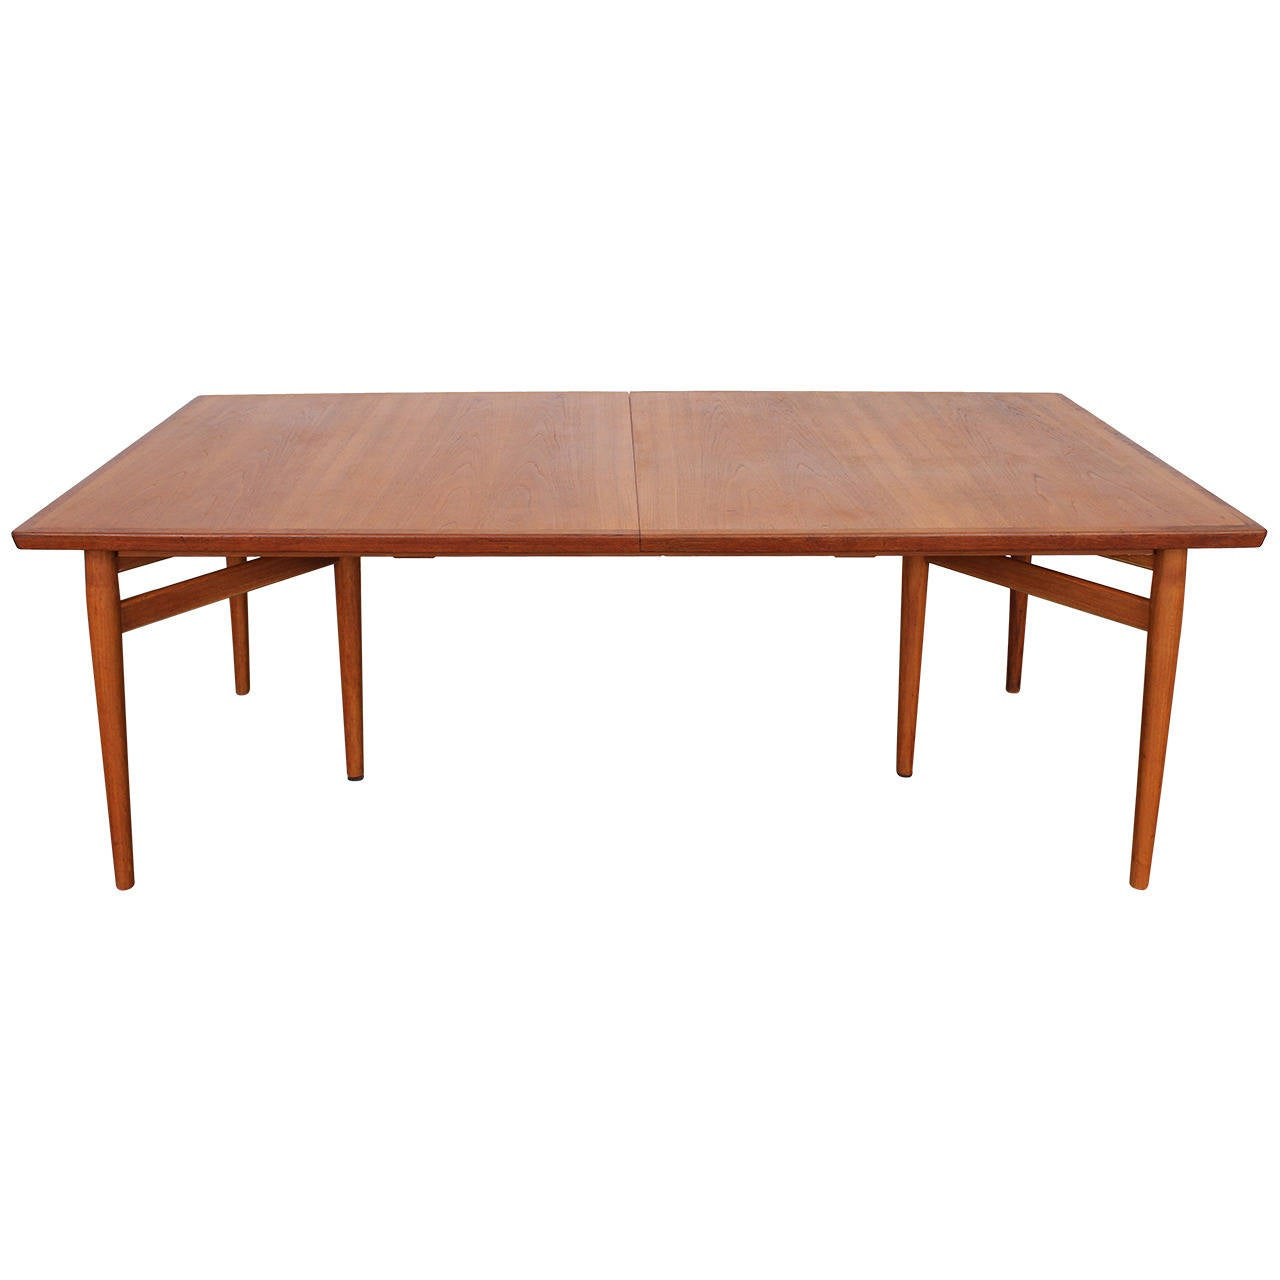 Arne Vodder Teak Danish Dining Table Produced By Sibast At 1stdibs